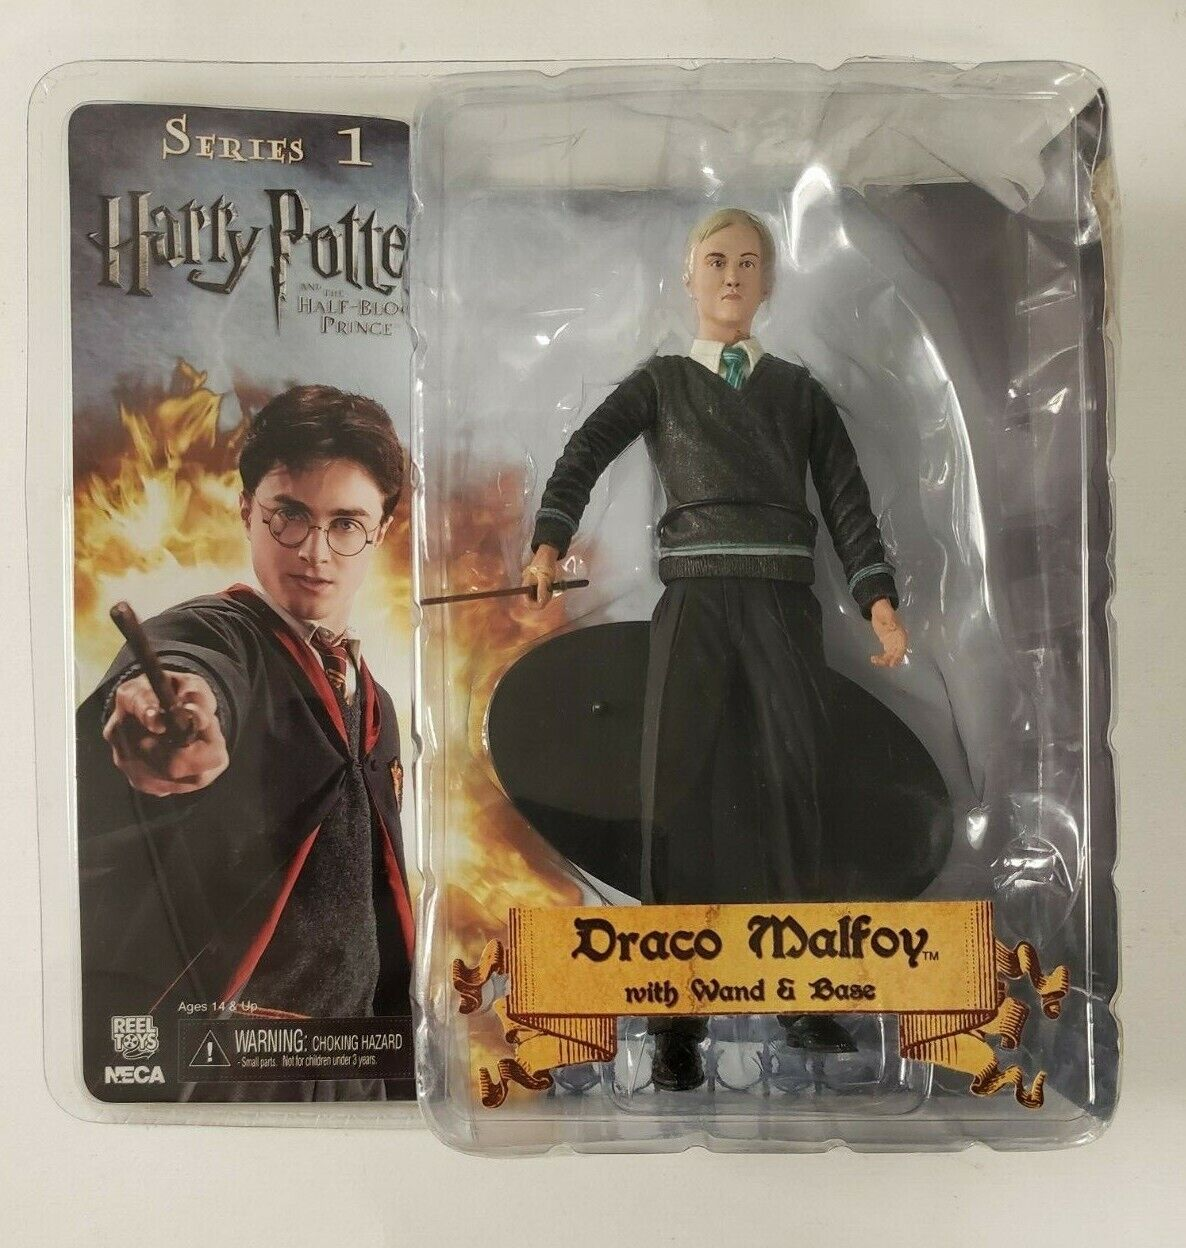 Harry Potter 7  Drago Malefoy avec sacuette & Base  série 1 Neca FACTORY SEALED  40% de réduction